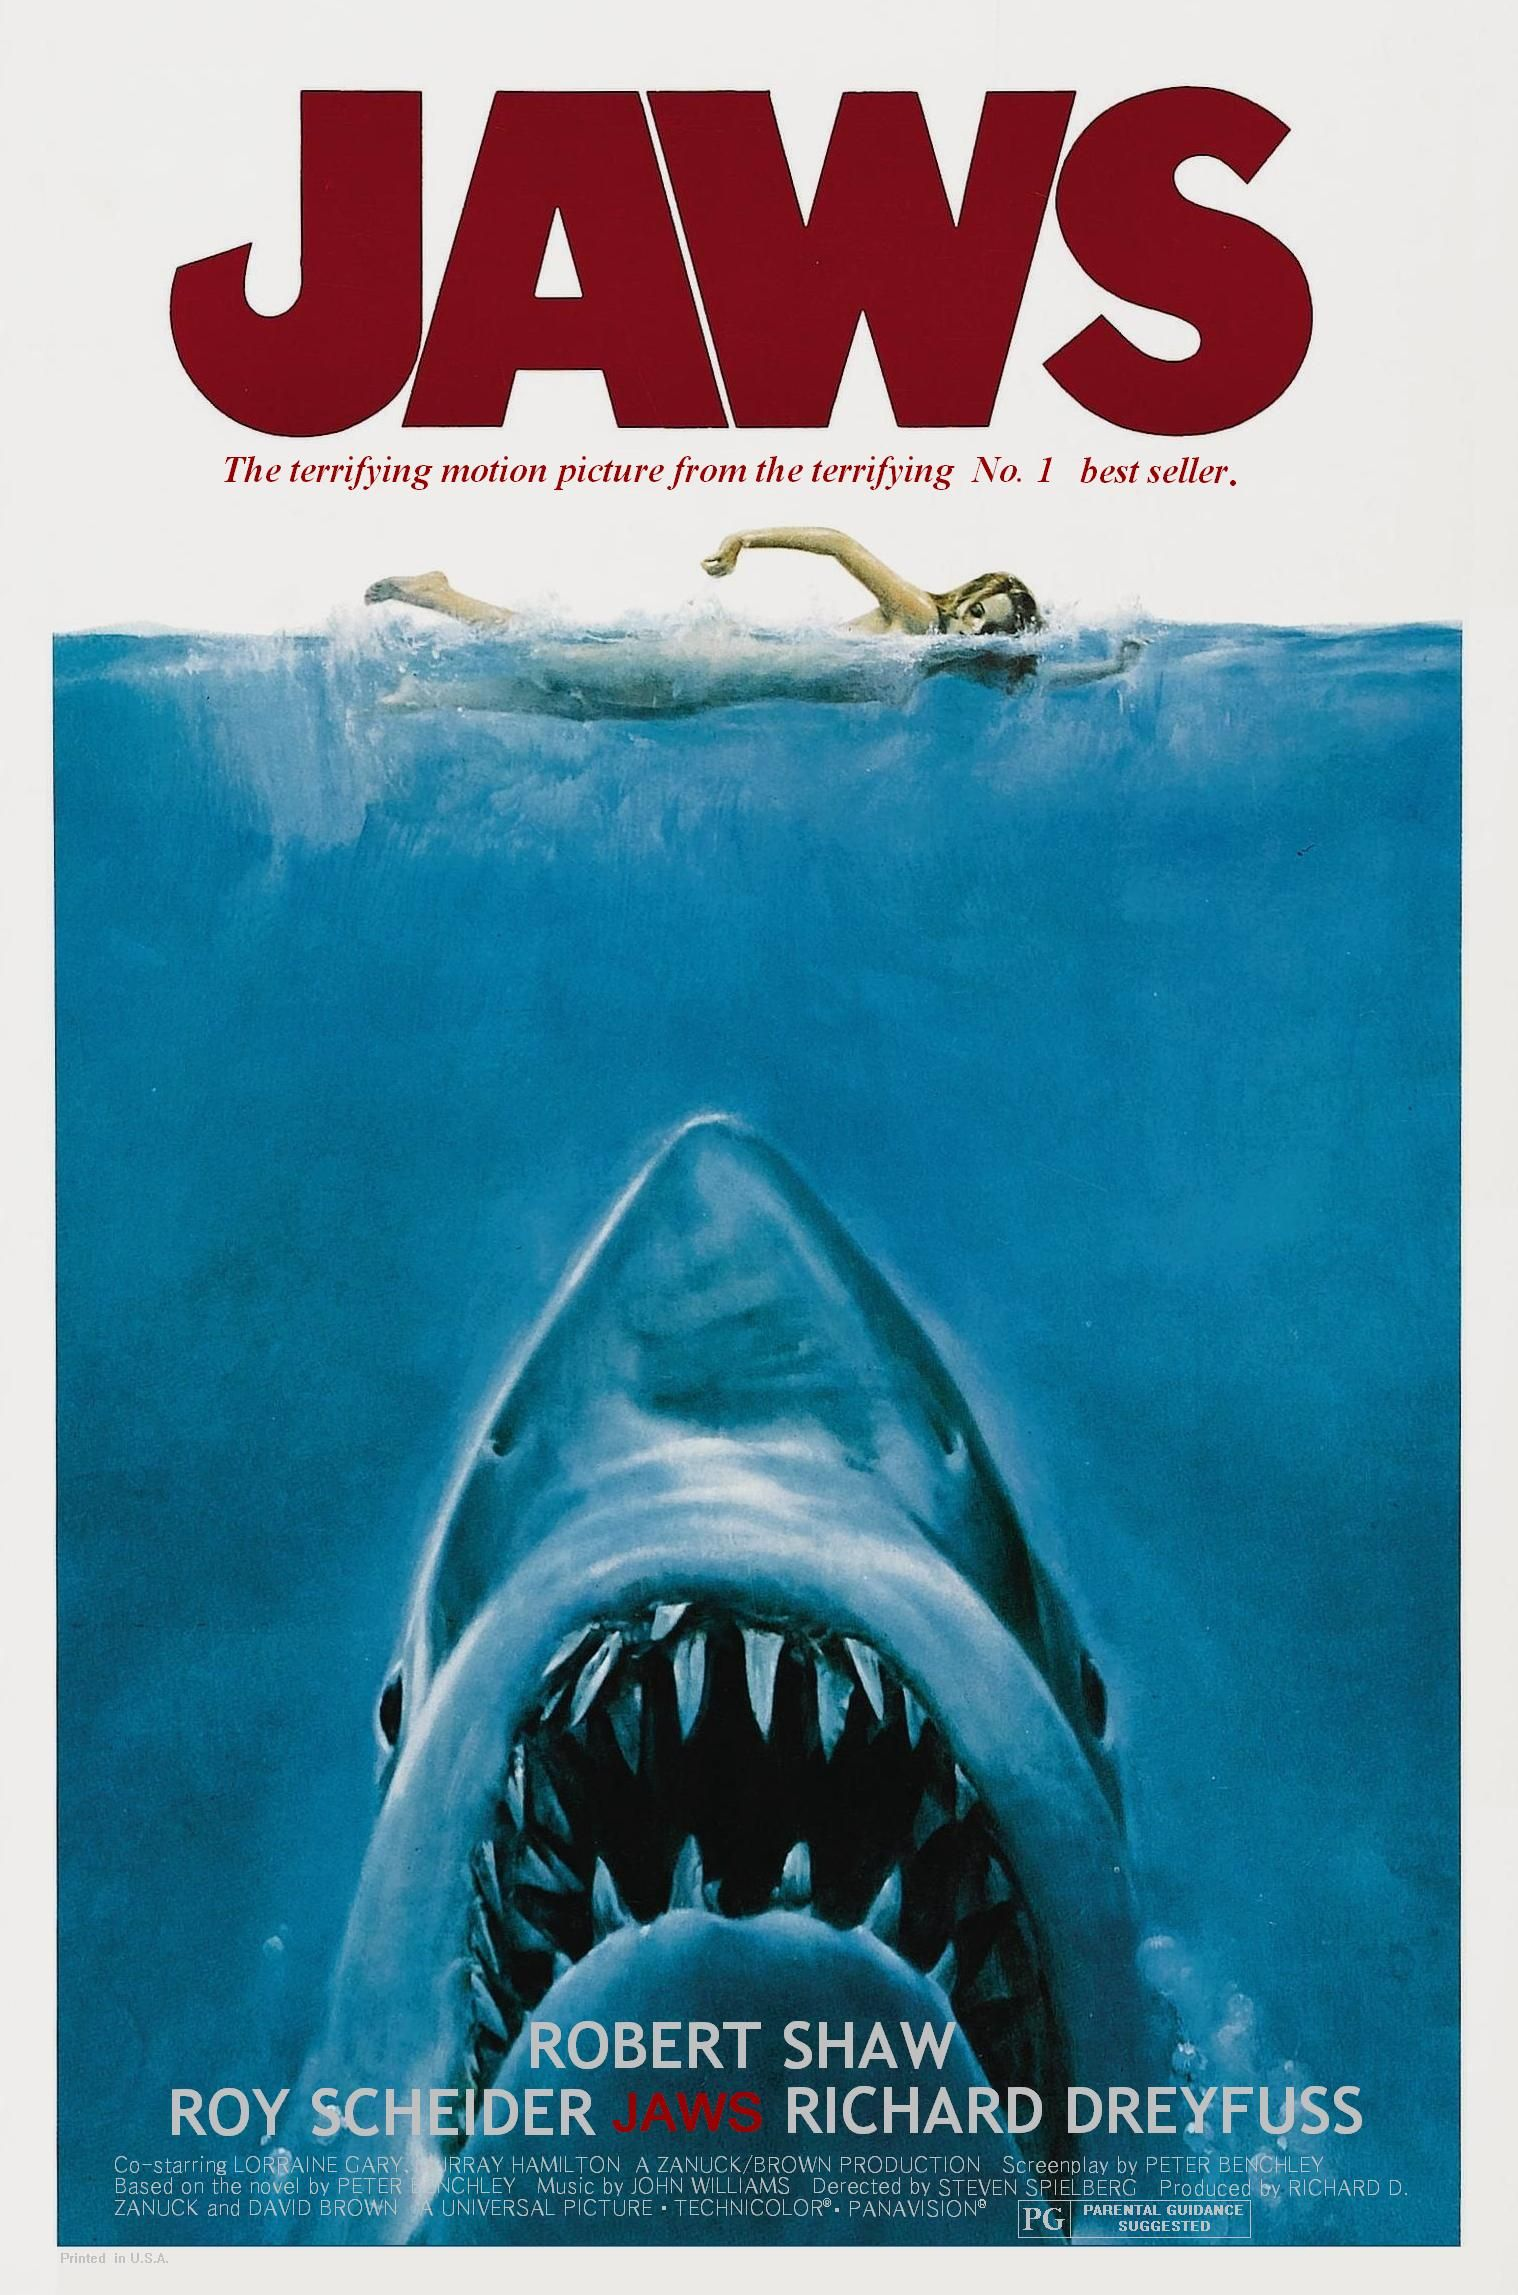 Pin By Martin On Jaws Comic Movies Movie Posters Vintage Jaws Movie Poster